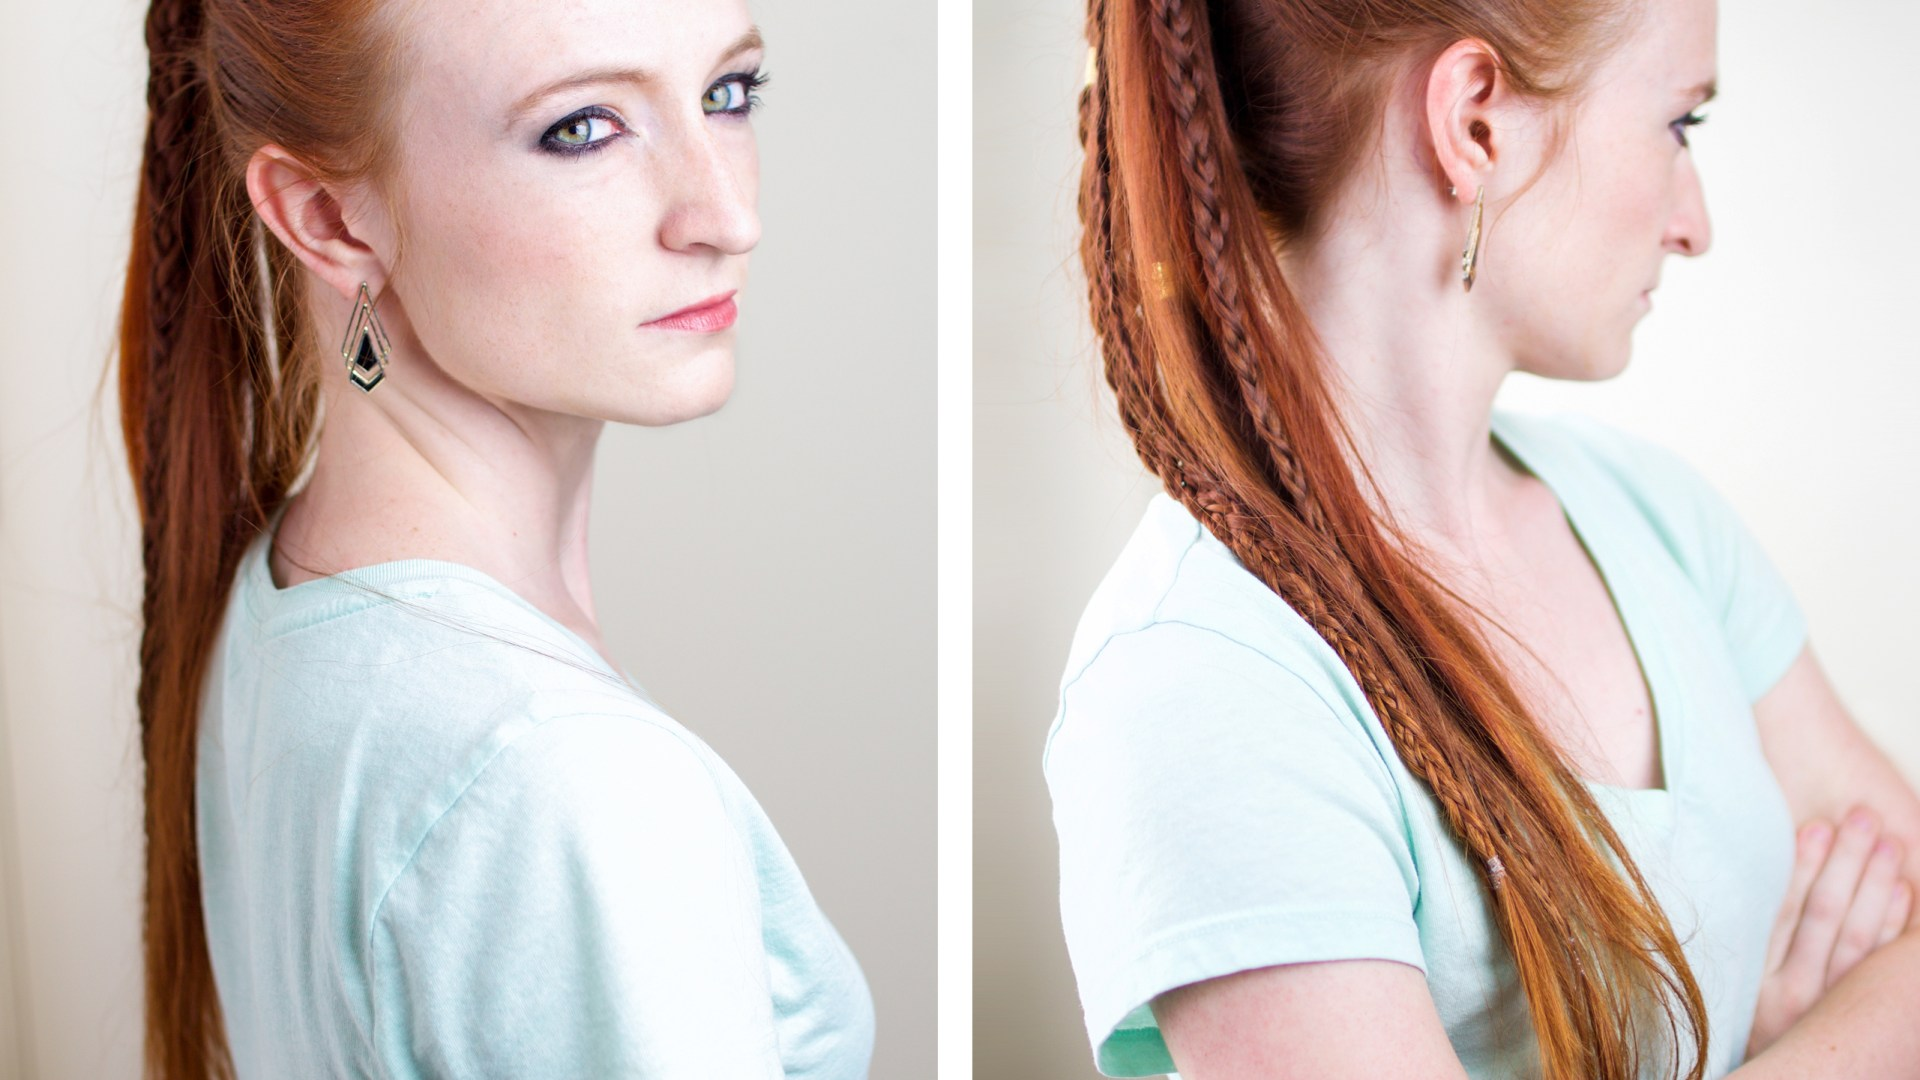 Torvi the Shieldmaiden – Braided Hairstyles